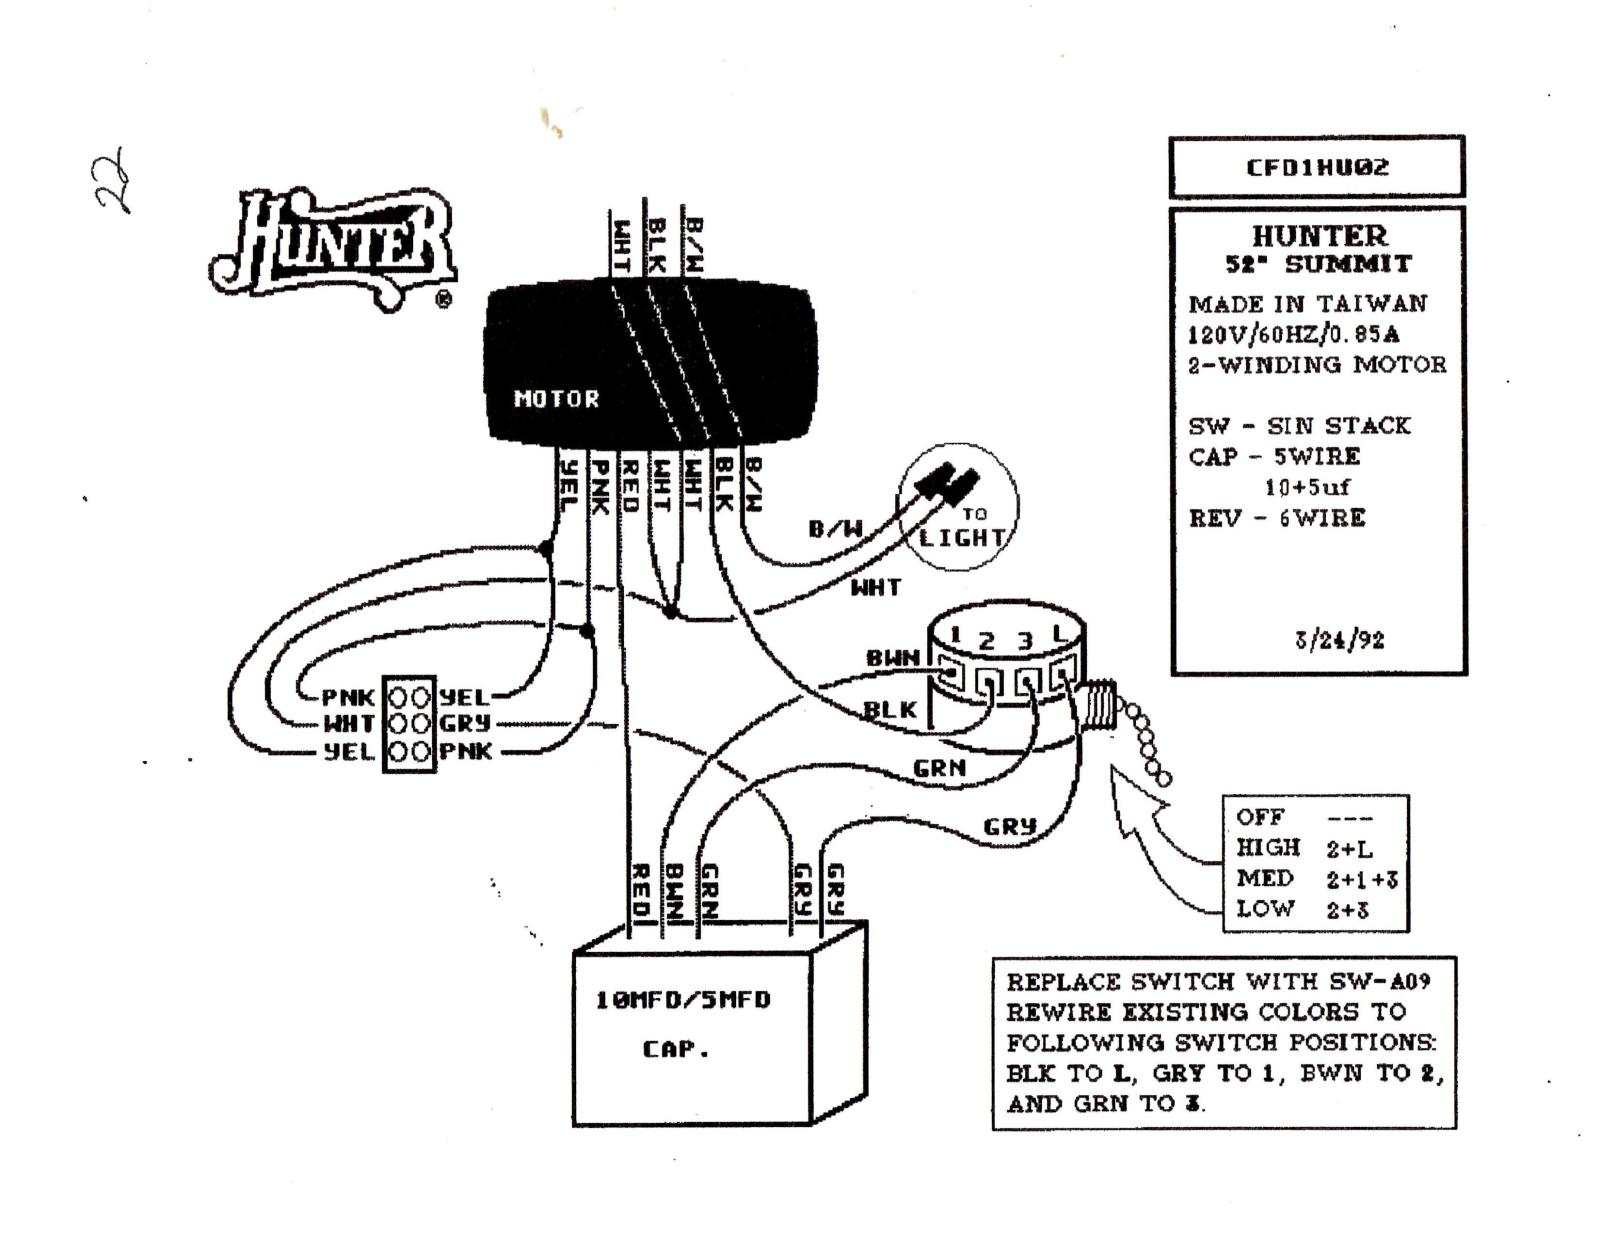 Zing Ear Fan Switch 3 Way Wiring Diagram | Wiring Diagram - Zing Ear Ze-208S Wiring Diagram